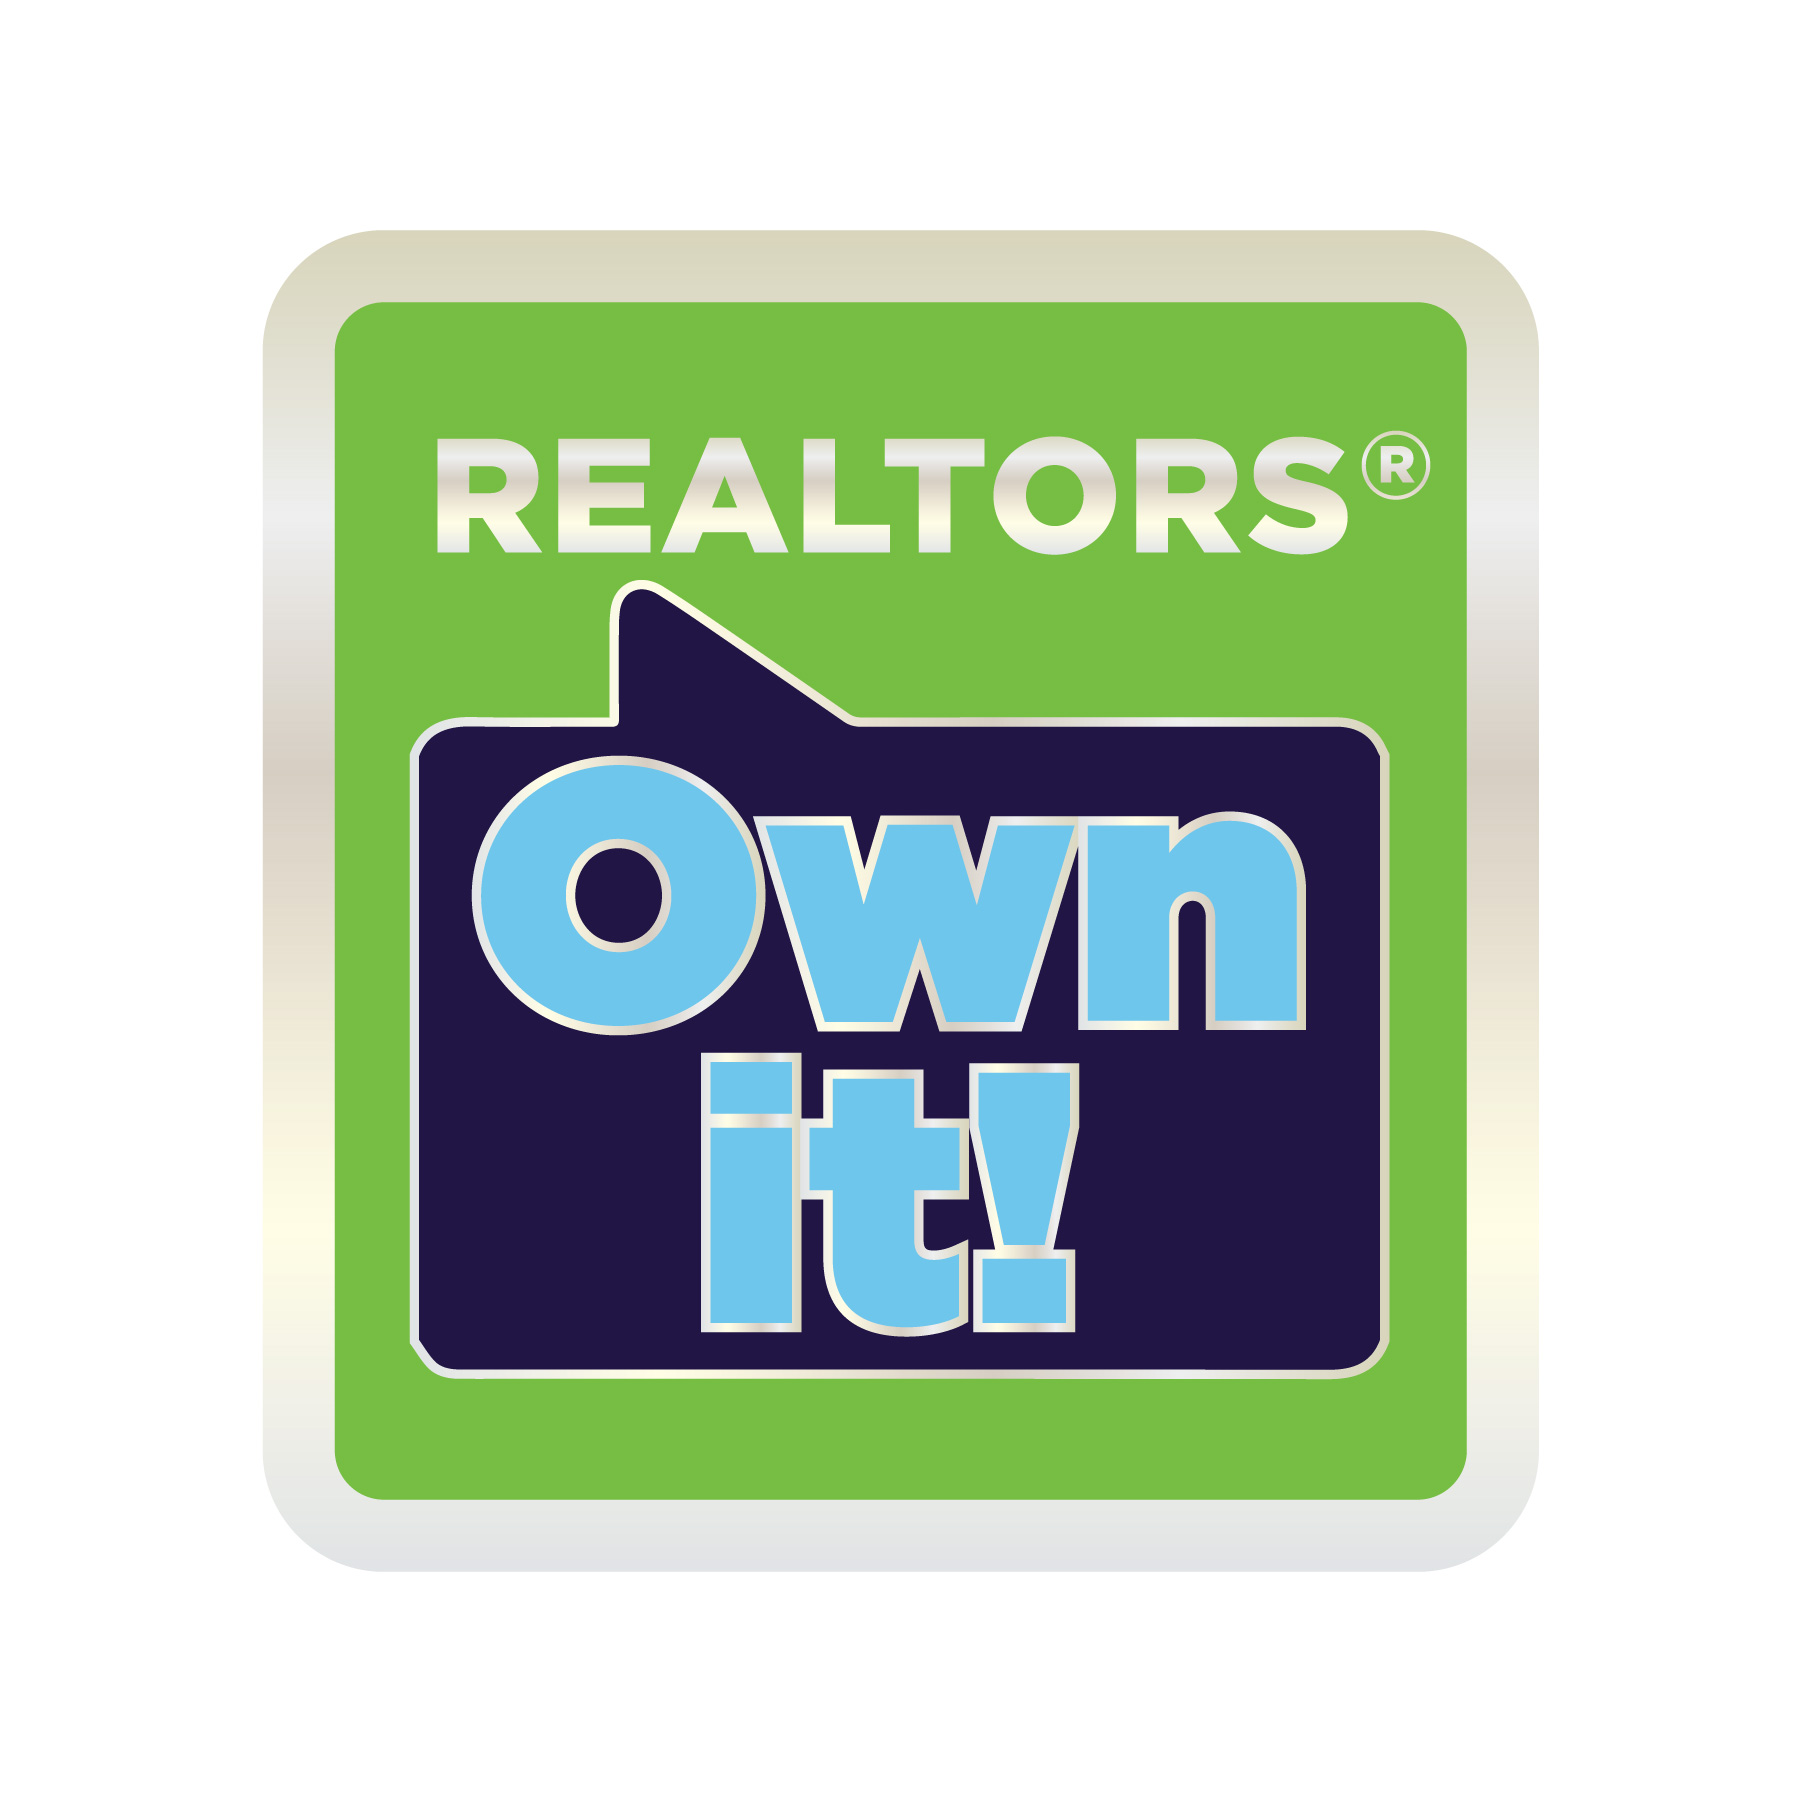 REALTORS® Own It! Lapel Pin - ROI1003